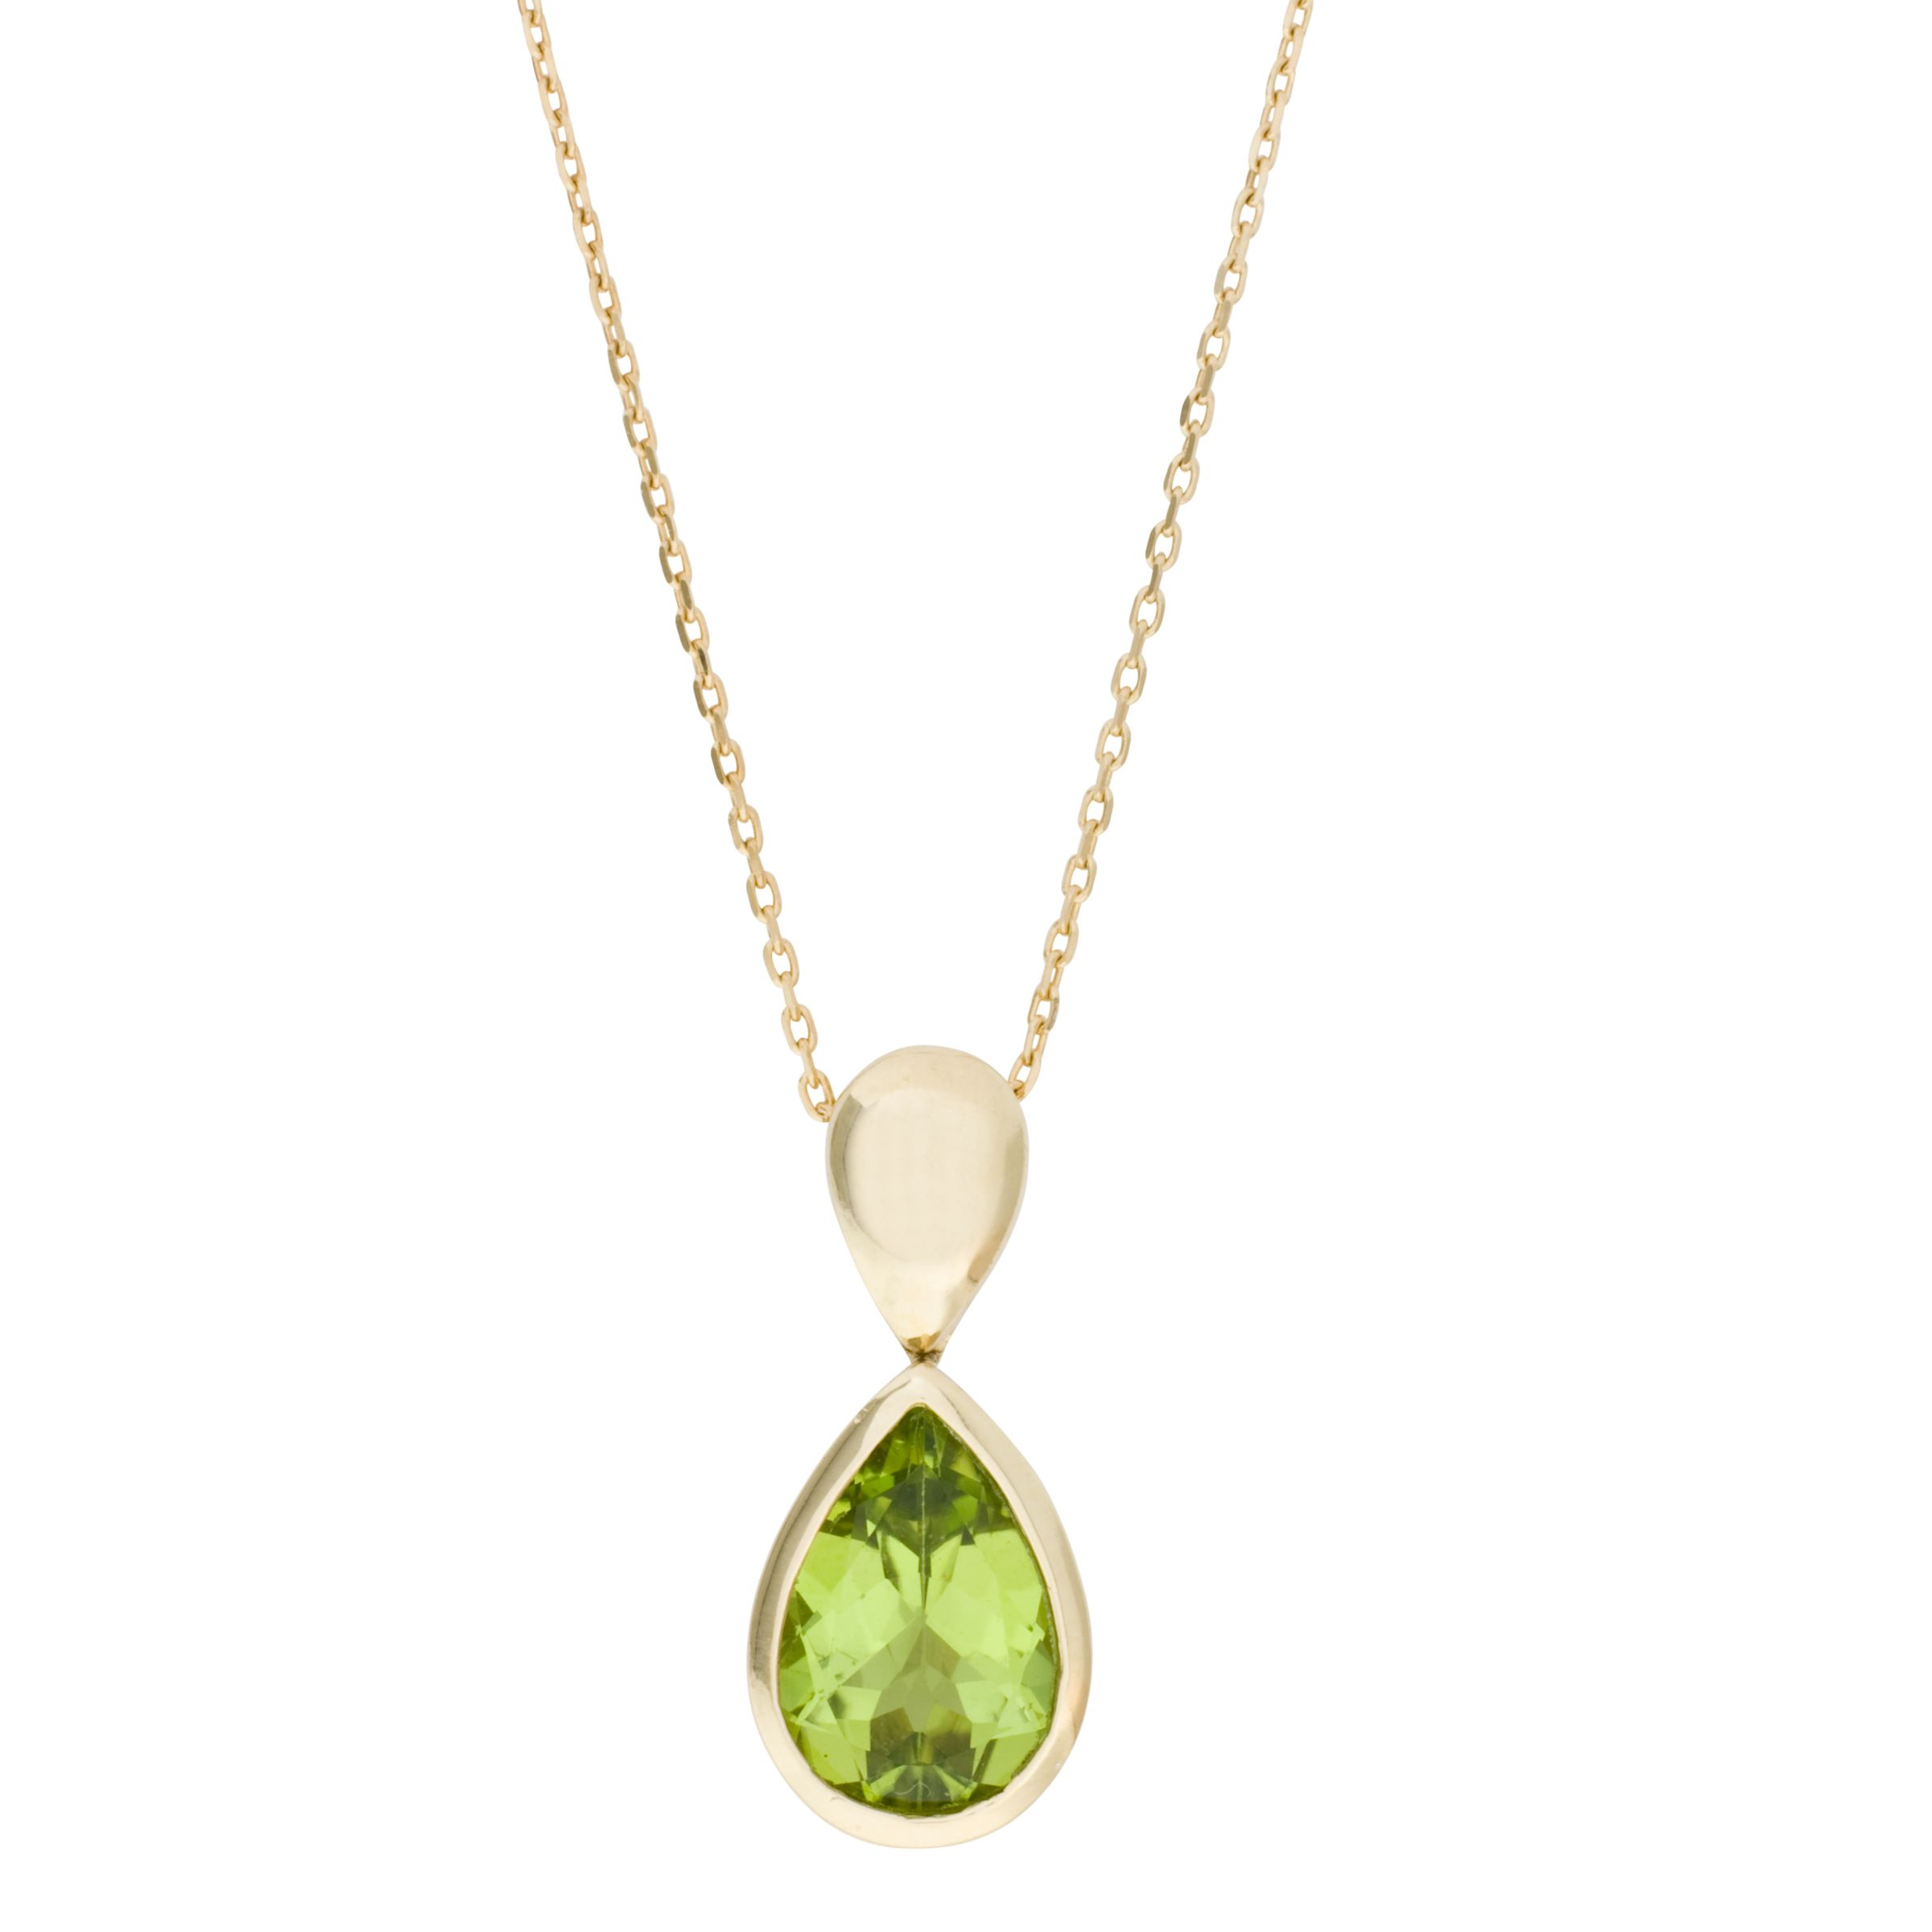 London Road Gold Peridot Pendant Necklace